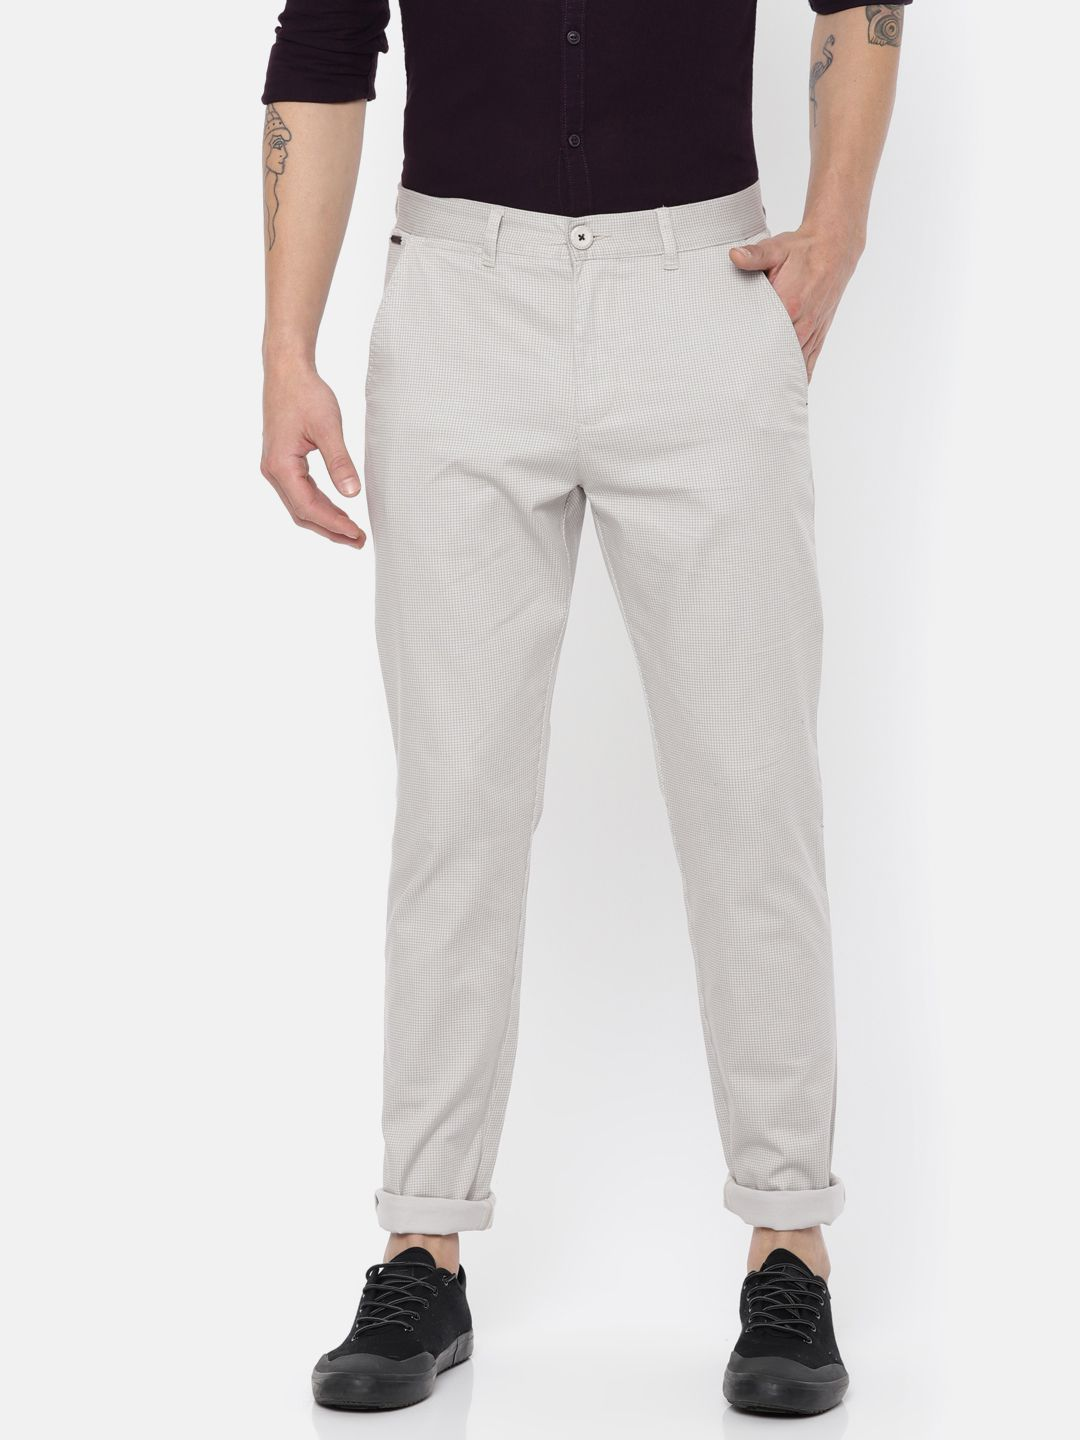 The Indian Garage Co. Grey Slim -Fit Flat Chinos